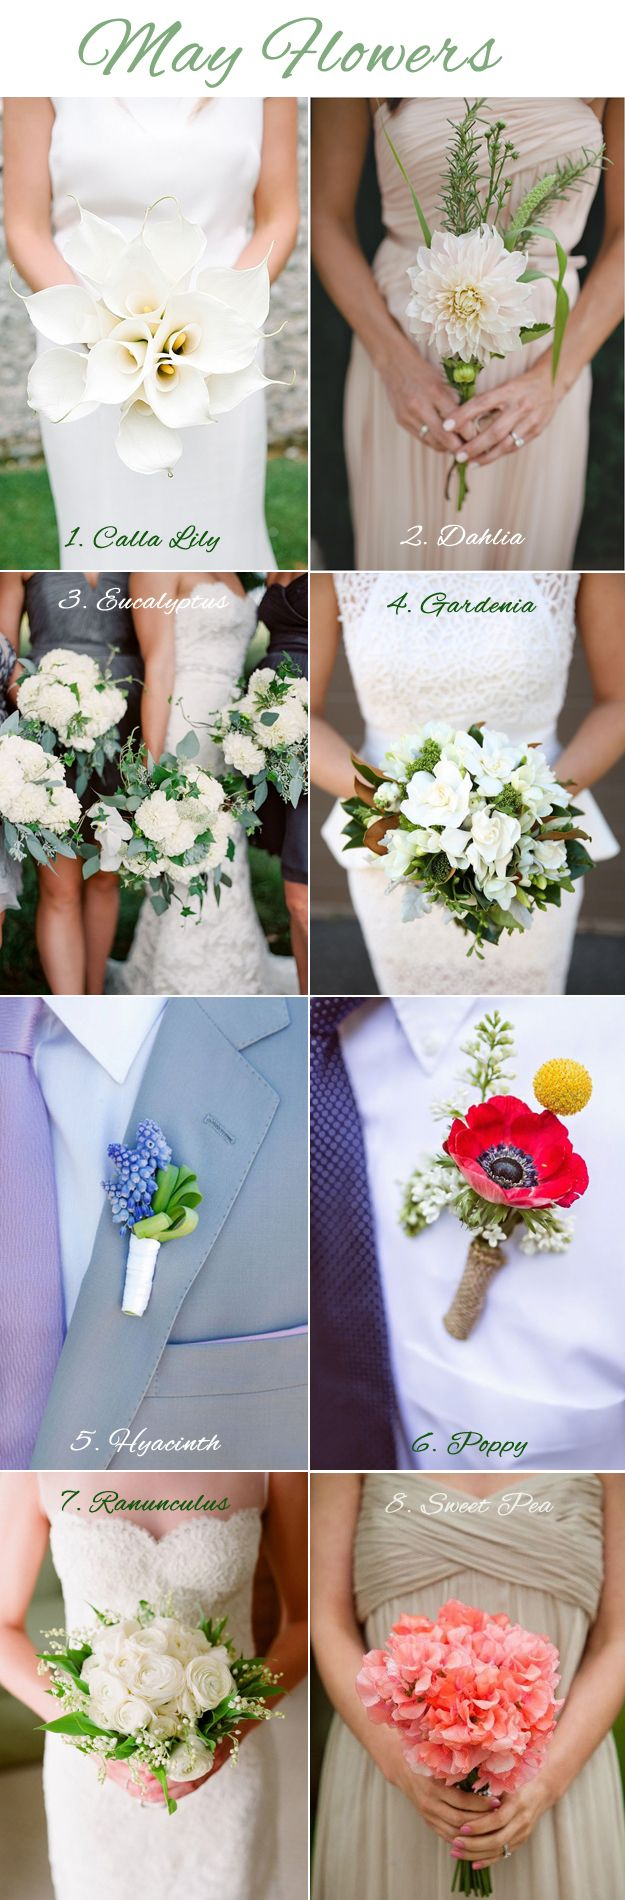 May Wedding Flowers - Lucky in Love Wedding Planning Blog - Seattle Weddings at Banquetevent.com #weddingflowers #Mayflowers #Springflowers